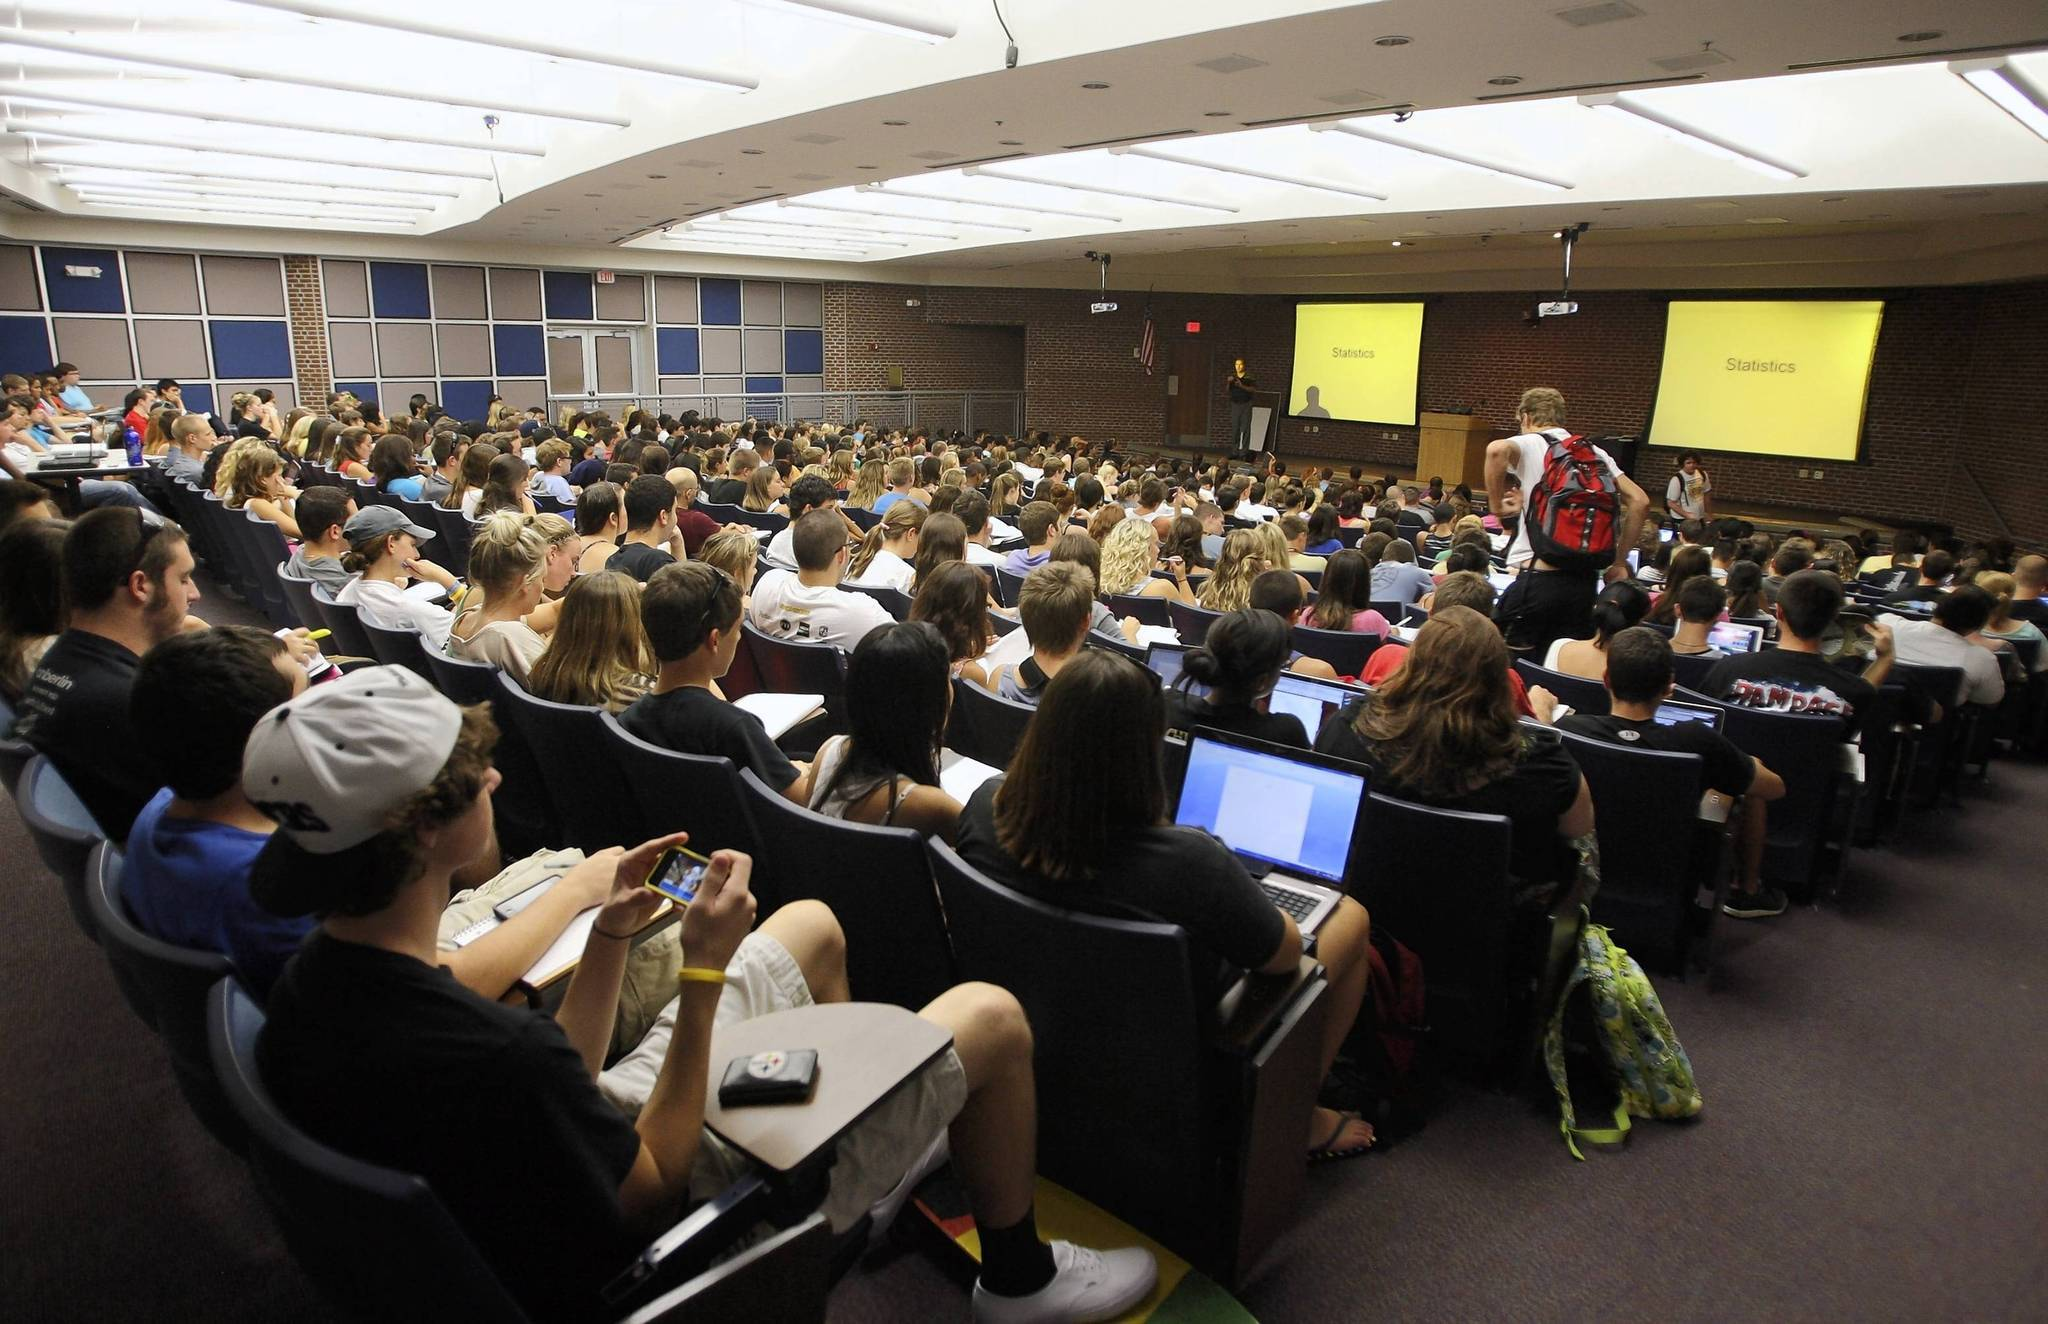 ucf class size ucf student faculty ratio is one of the highest in ucf s growth worries education leaders